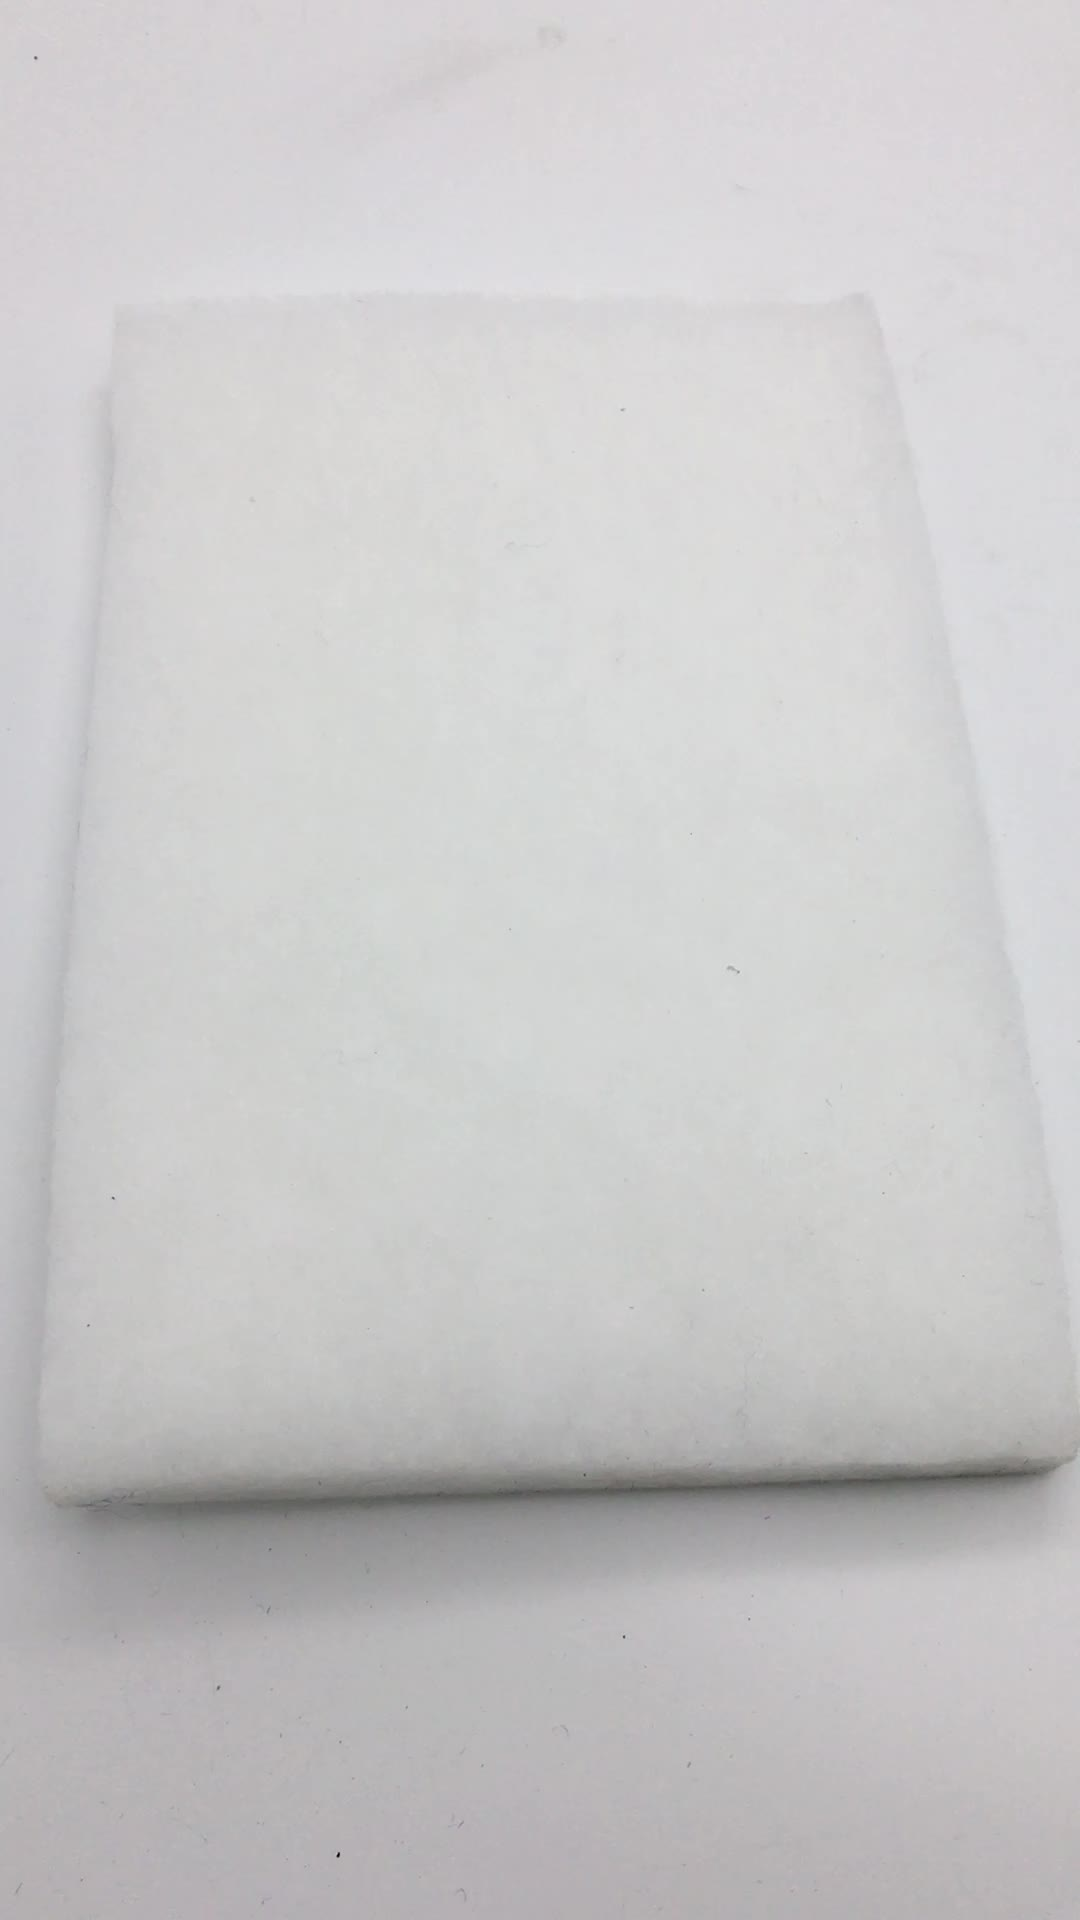 polyester 500g 600g ceiling filter for paint booth shop